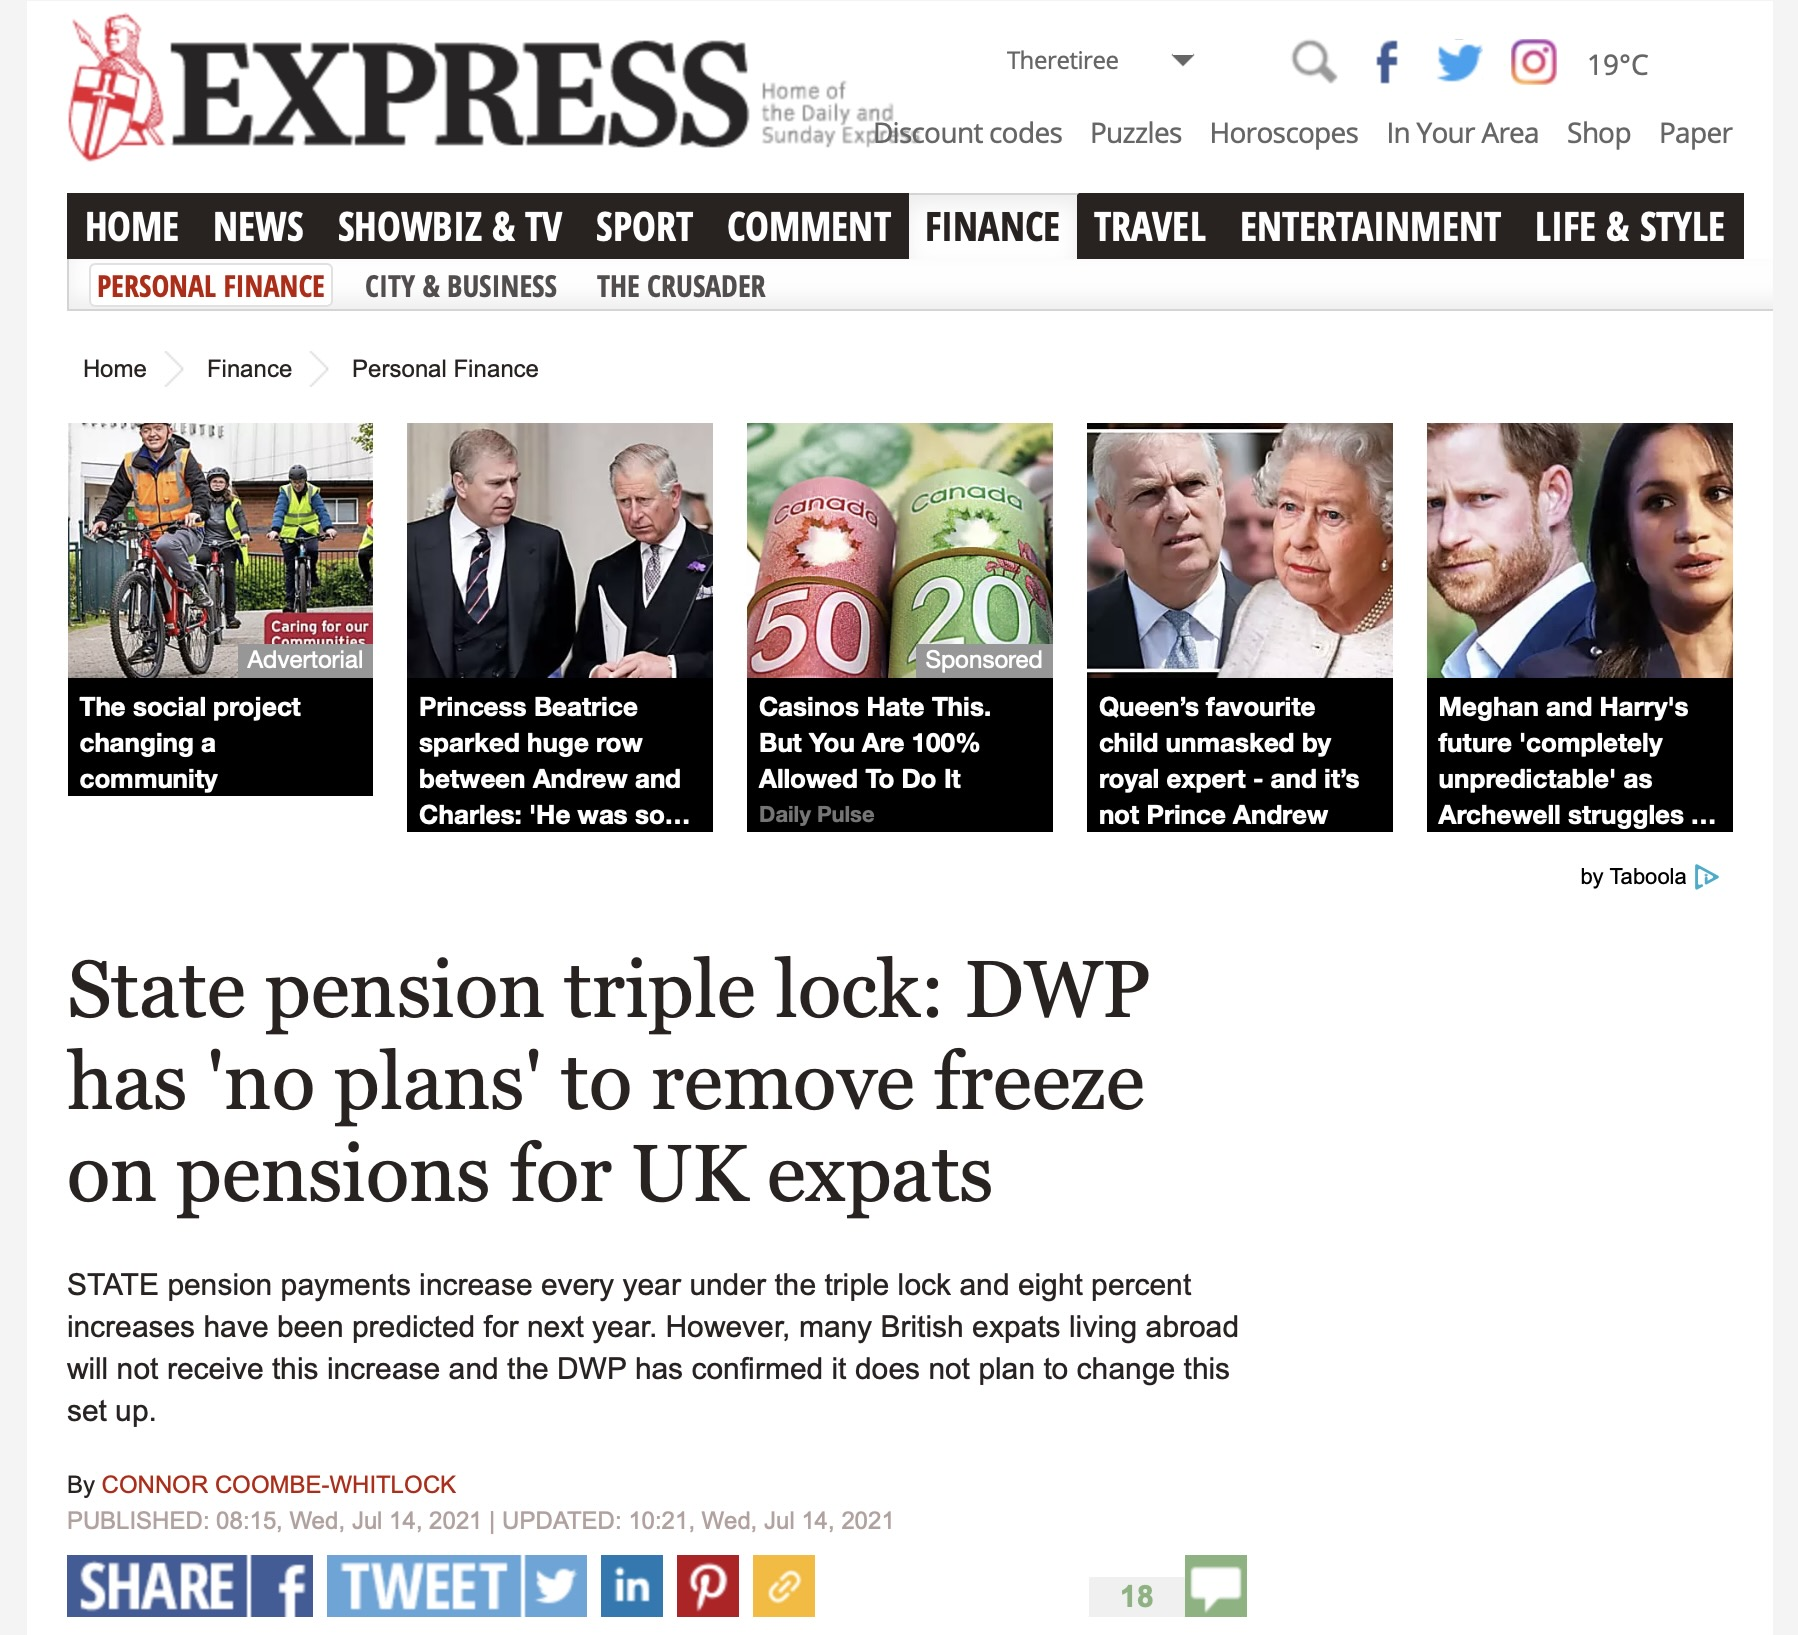 2021-07-14 - The Express